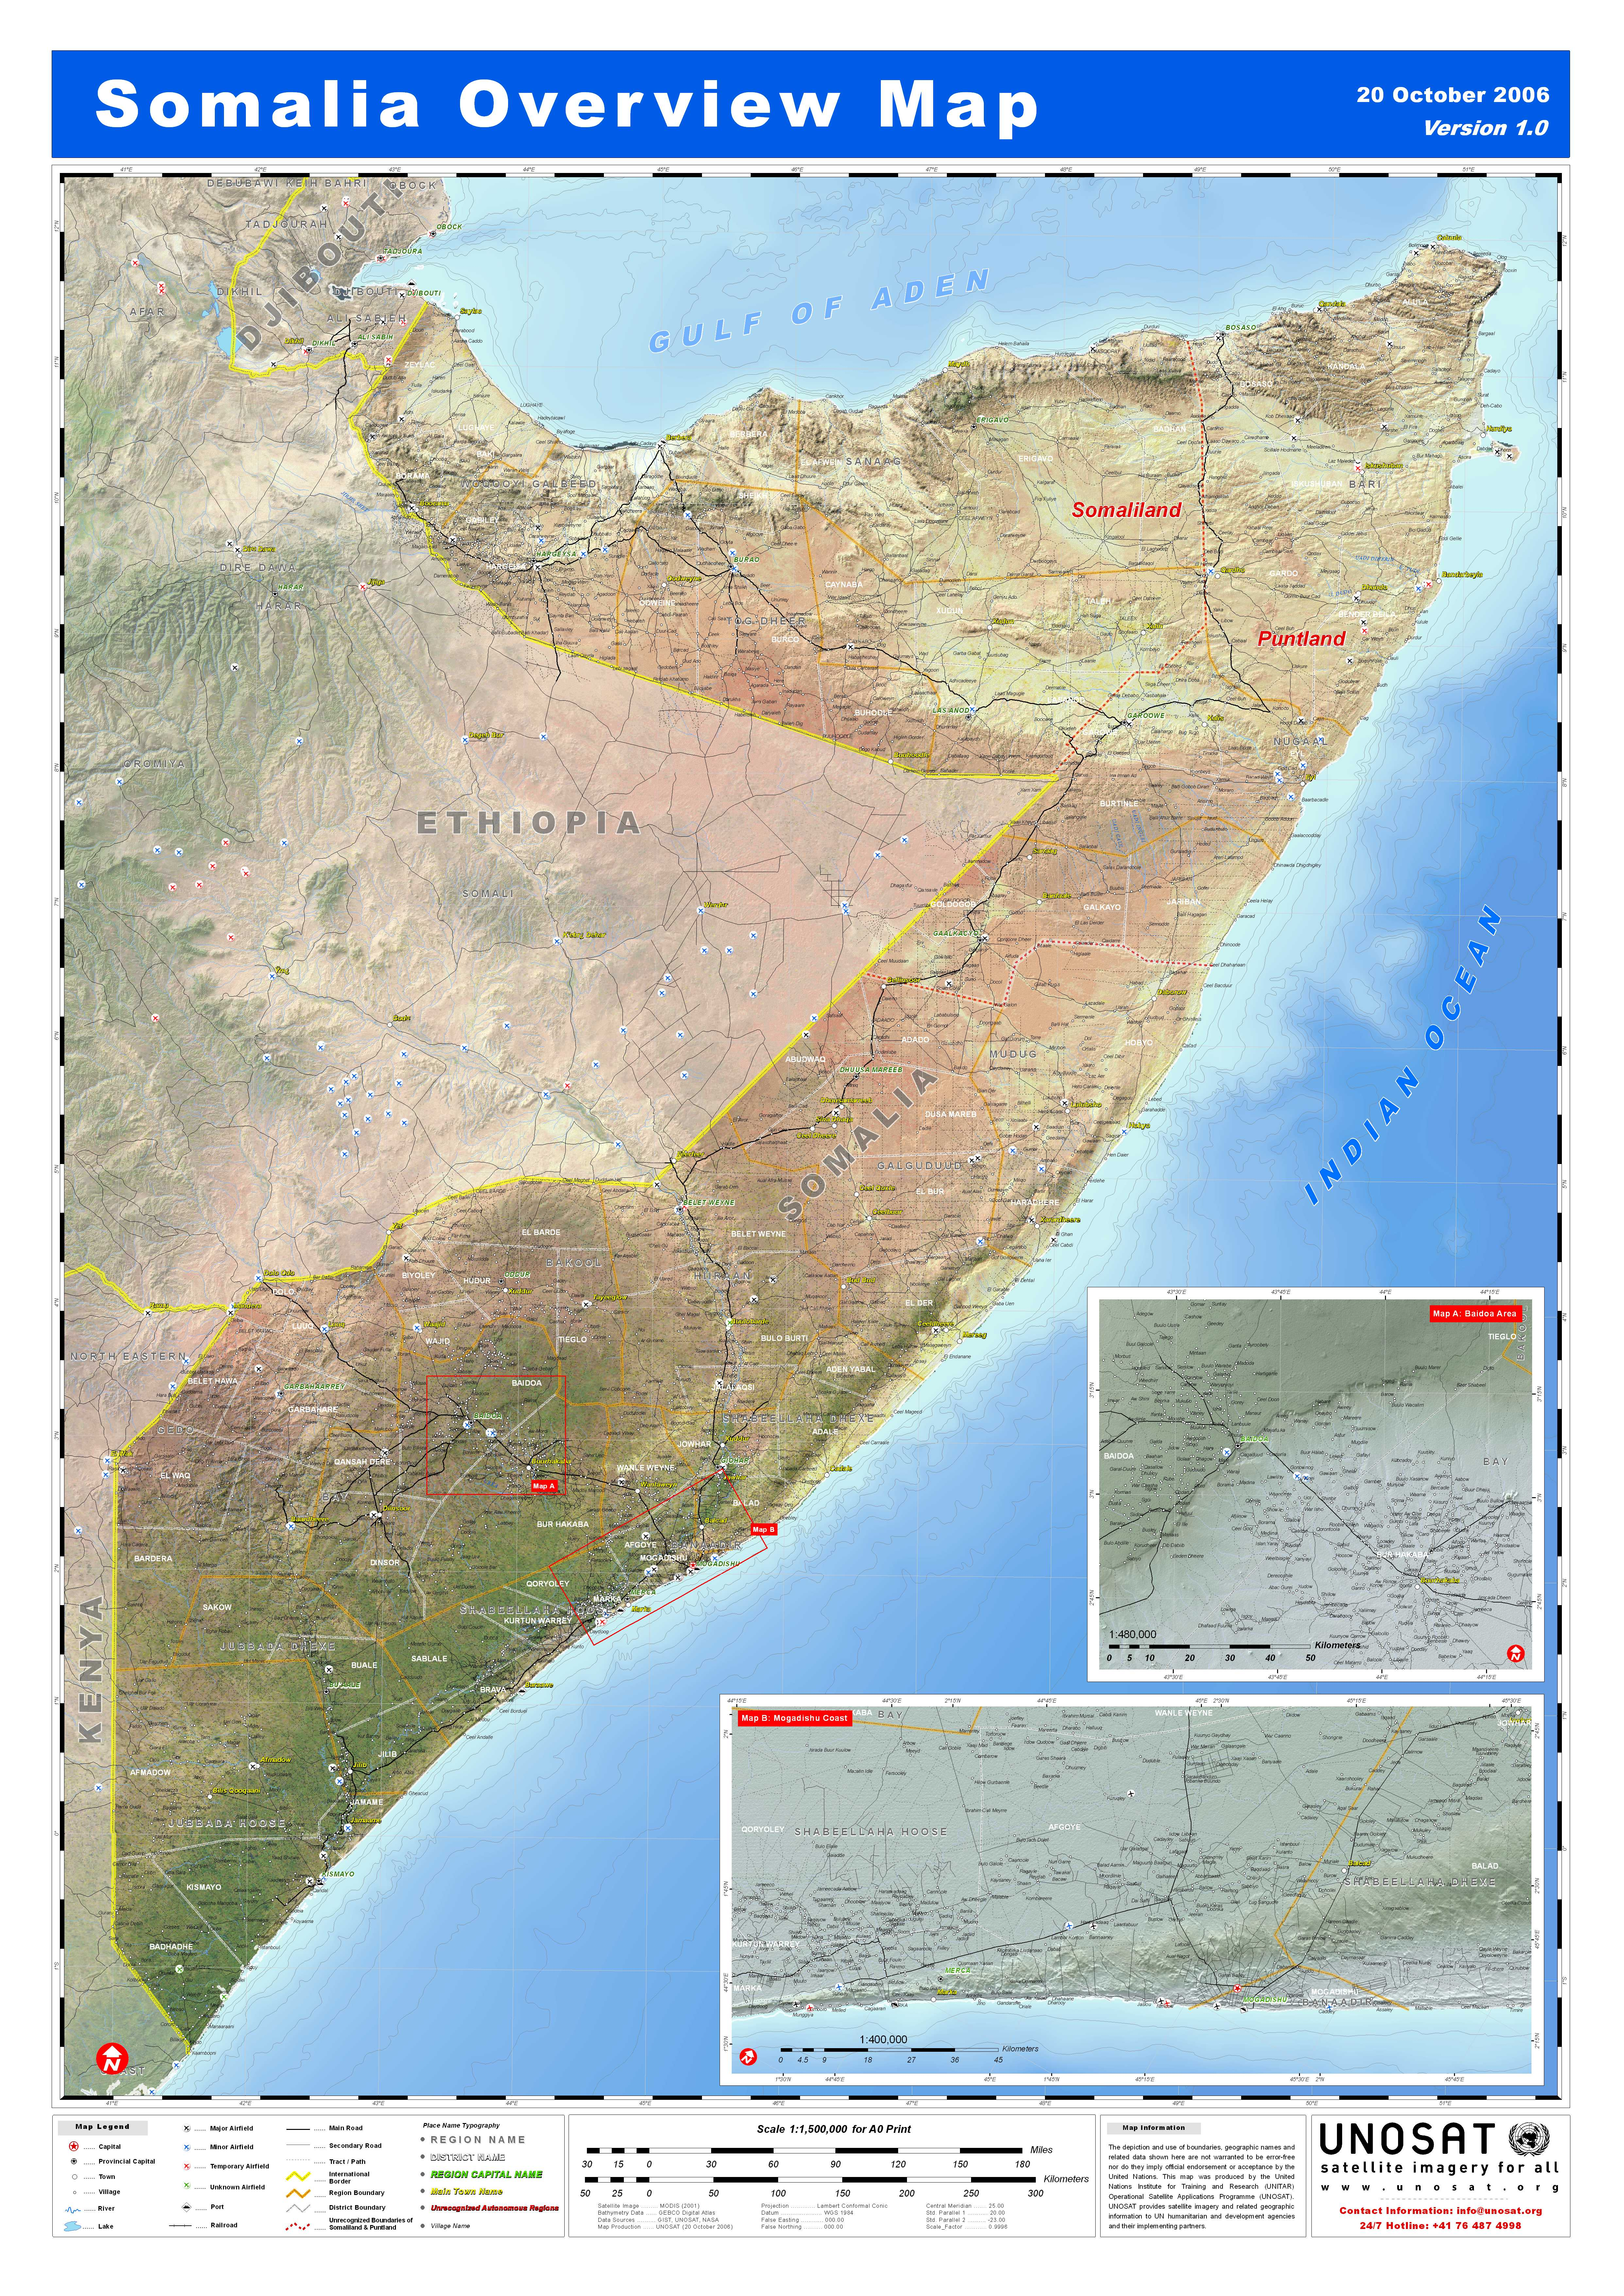 an overview of somalia Brief history home about somalia brief history british somaliland, to the north, gained independent on 26 june 1960.